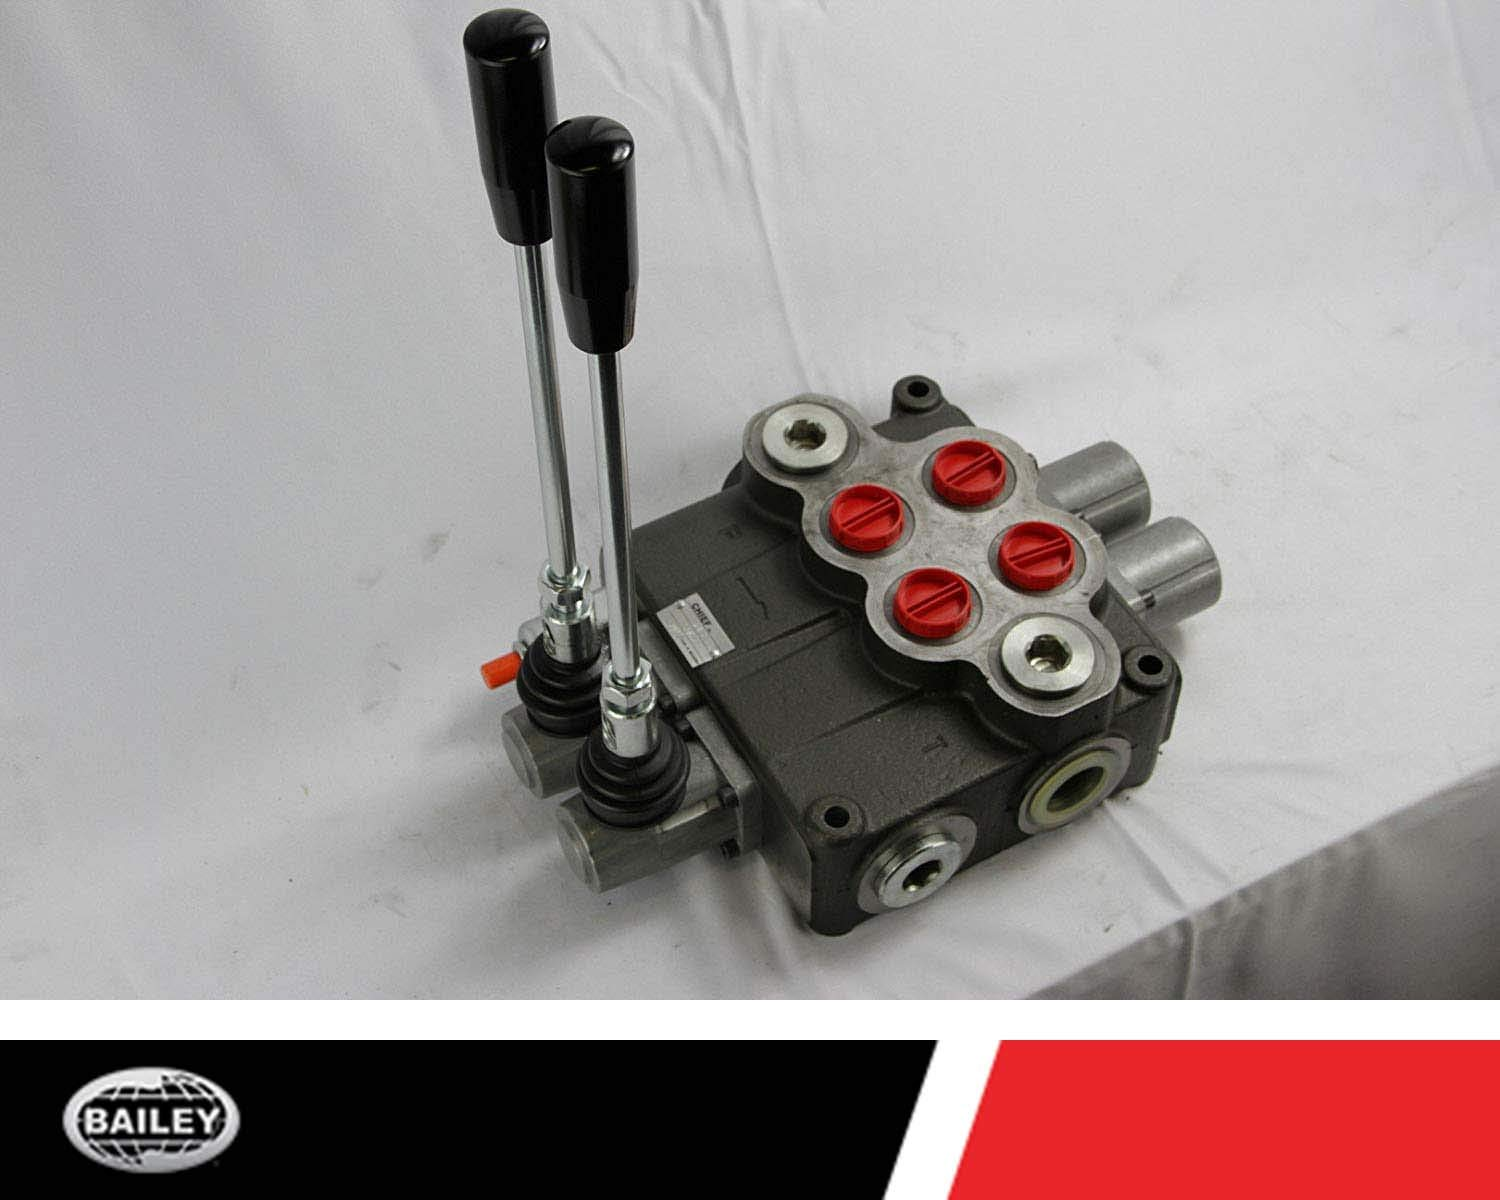 G Series SAE 12//16 Inlet//Outlet Ports and SAE 12 Work Ports CHIEF P120 Directional Control Valve 2 Spool 4 Way 3 Position and 3-pos Spring Center Action 220930 3625 PSI : 30 GPM